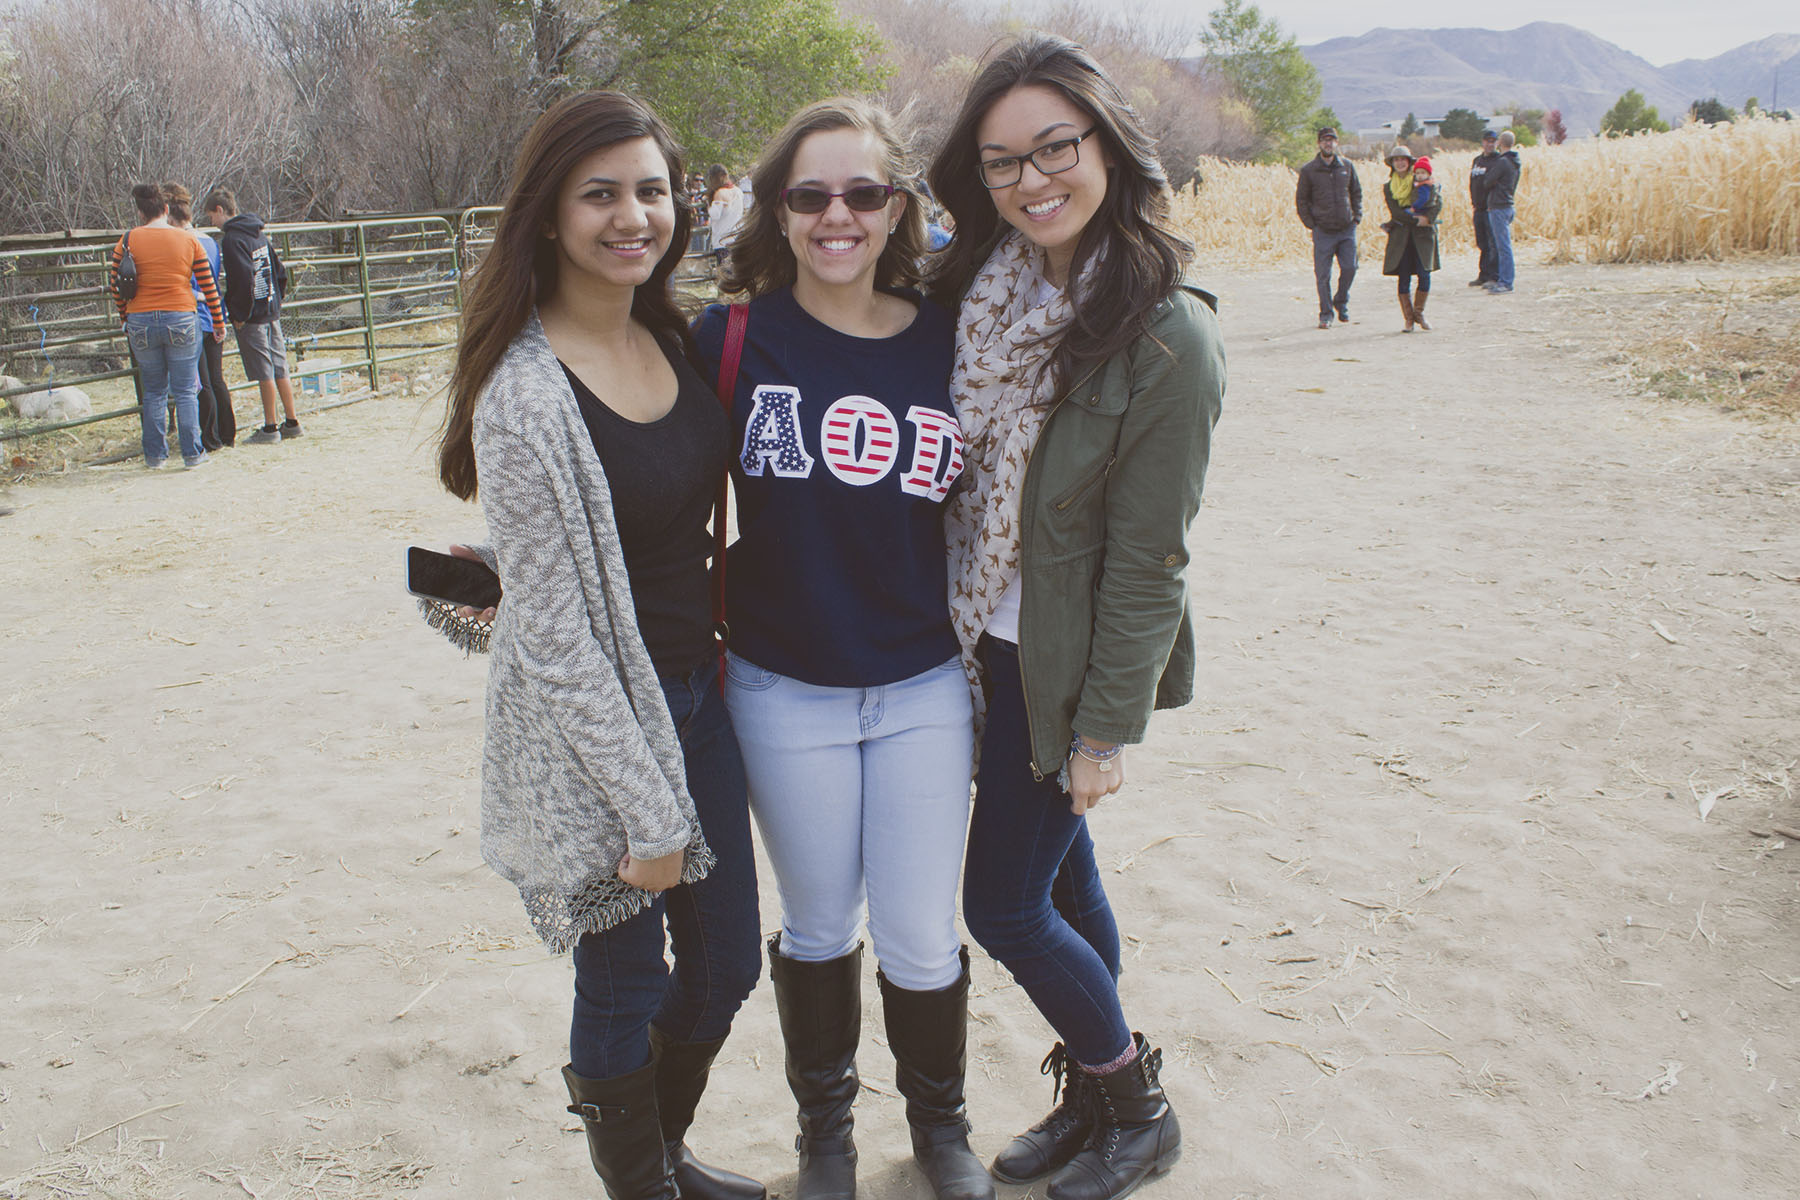 Falling in Love with AOII